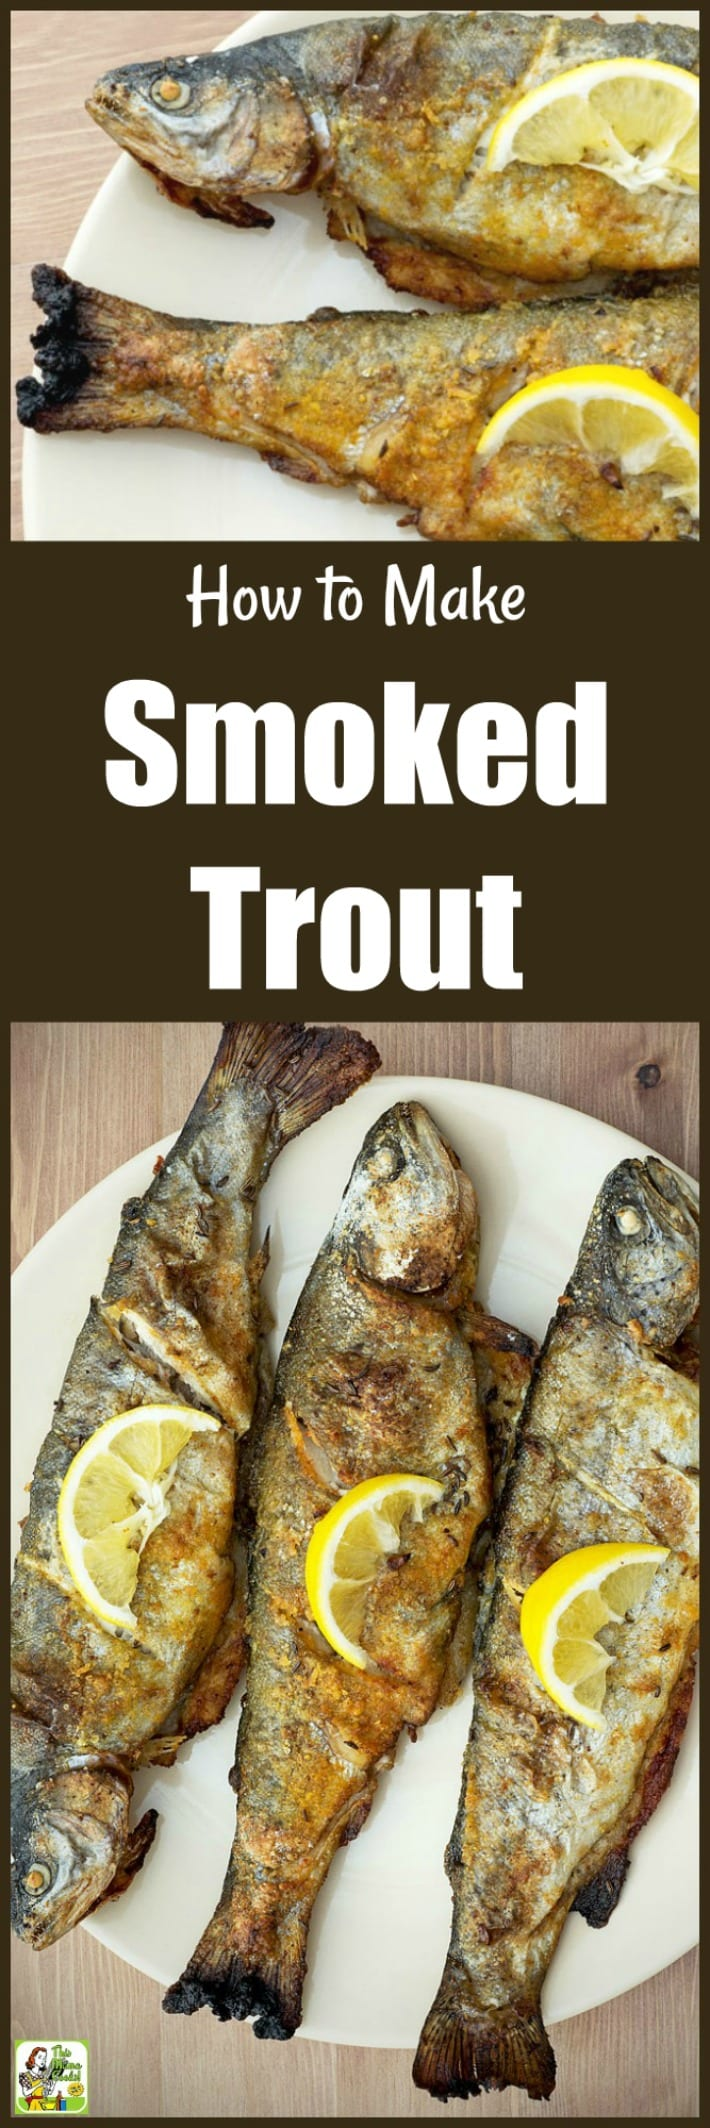 How to Make Smoked Trout